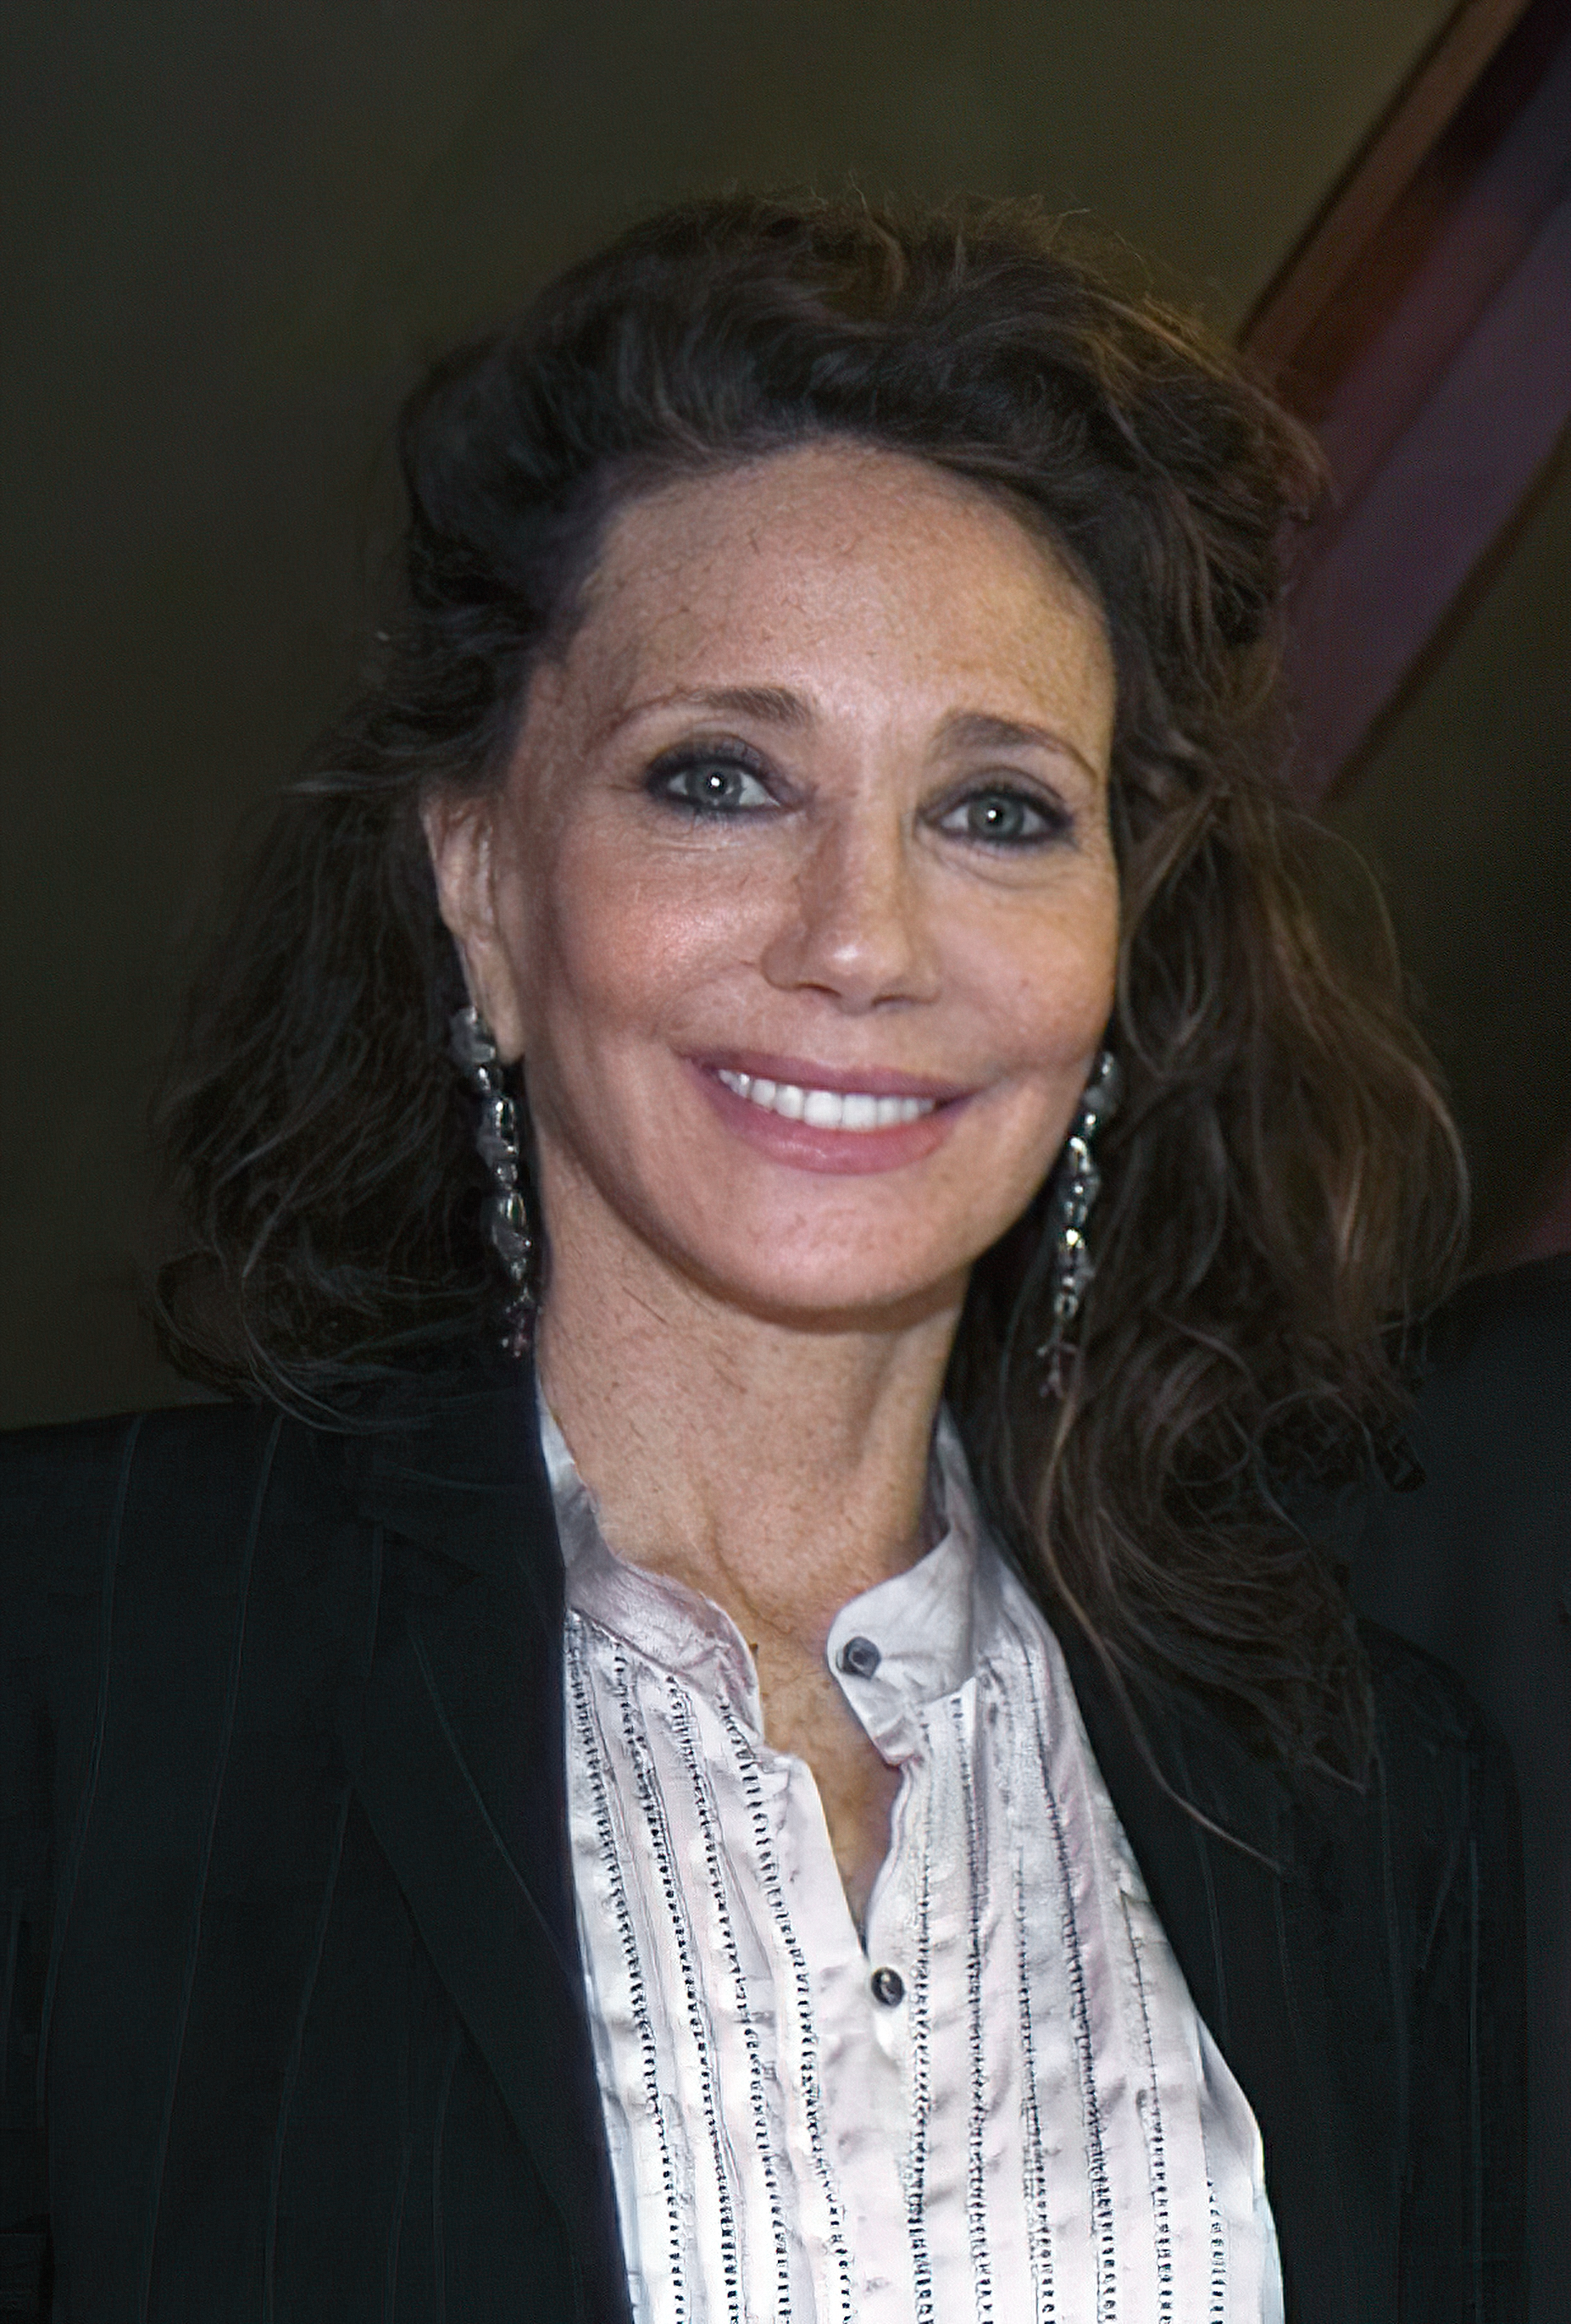 The 74-year old daughter of father Robert Lawrence Berenson and mother Gogo Schiaparelli Marisa Berenson in 2021 photo. Marisa Berenson earned a  million dollar salary - leaving the net worth at 82 million in 2021